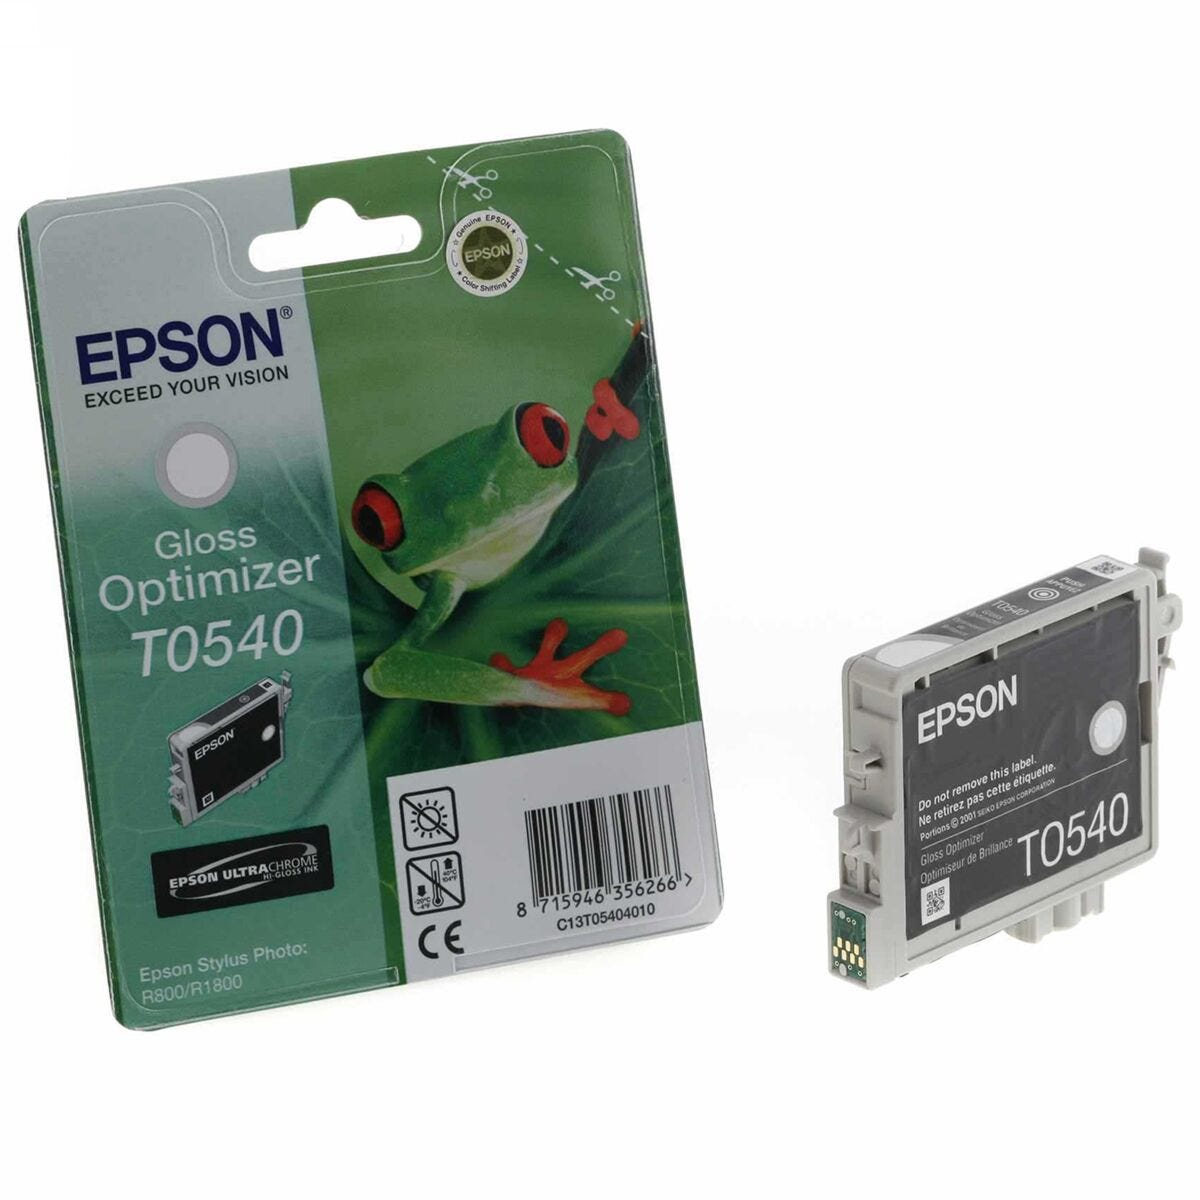 Epson T0540 Ink Cartridge 13ml